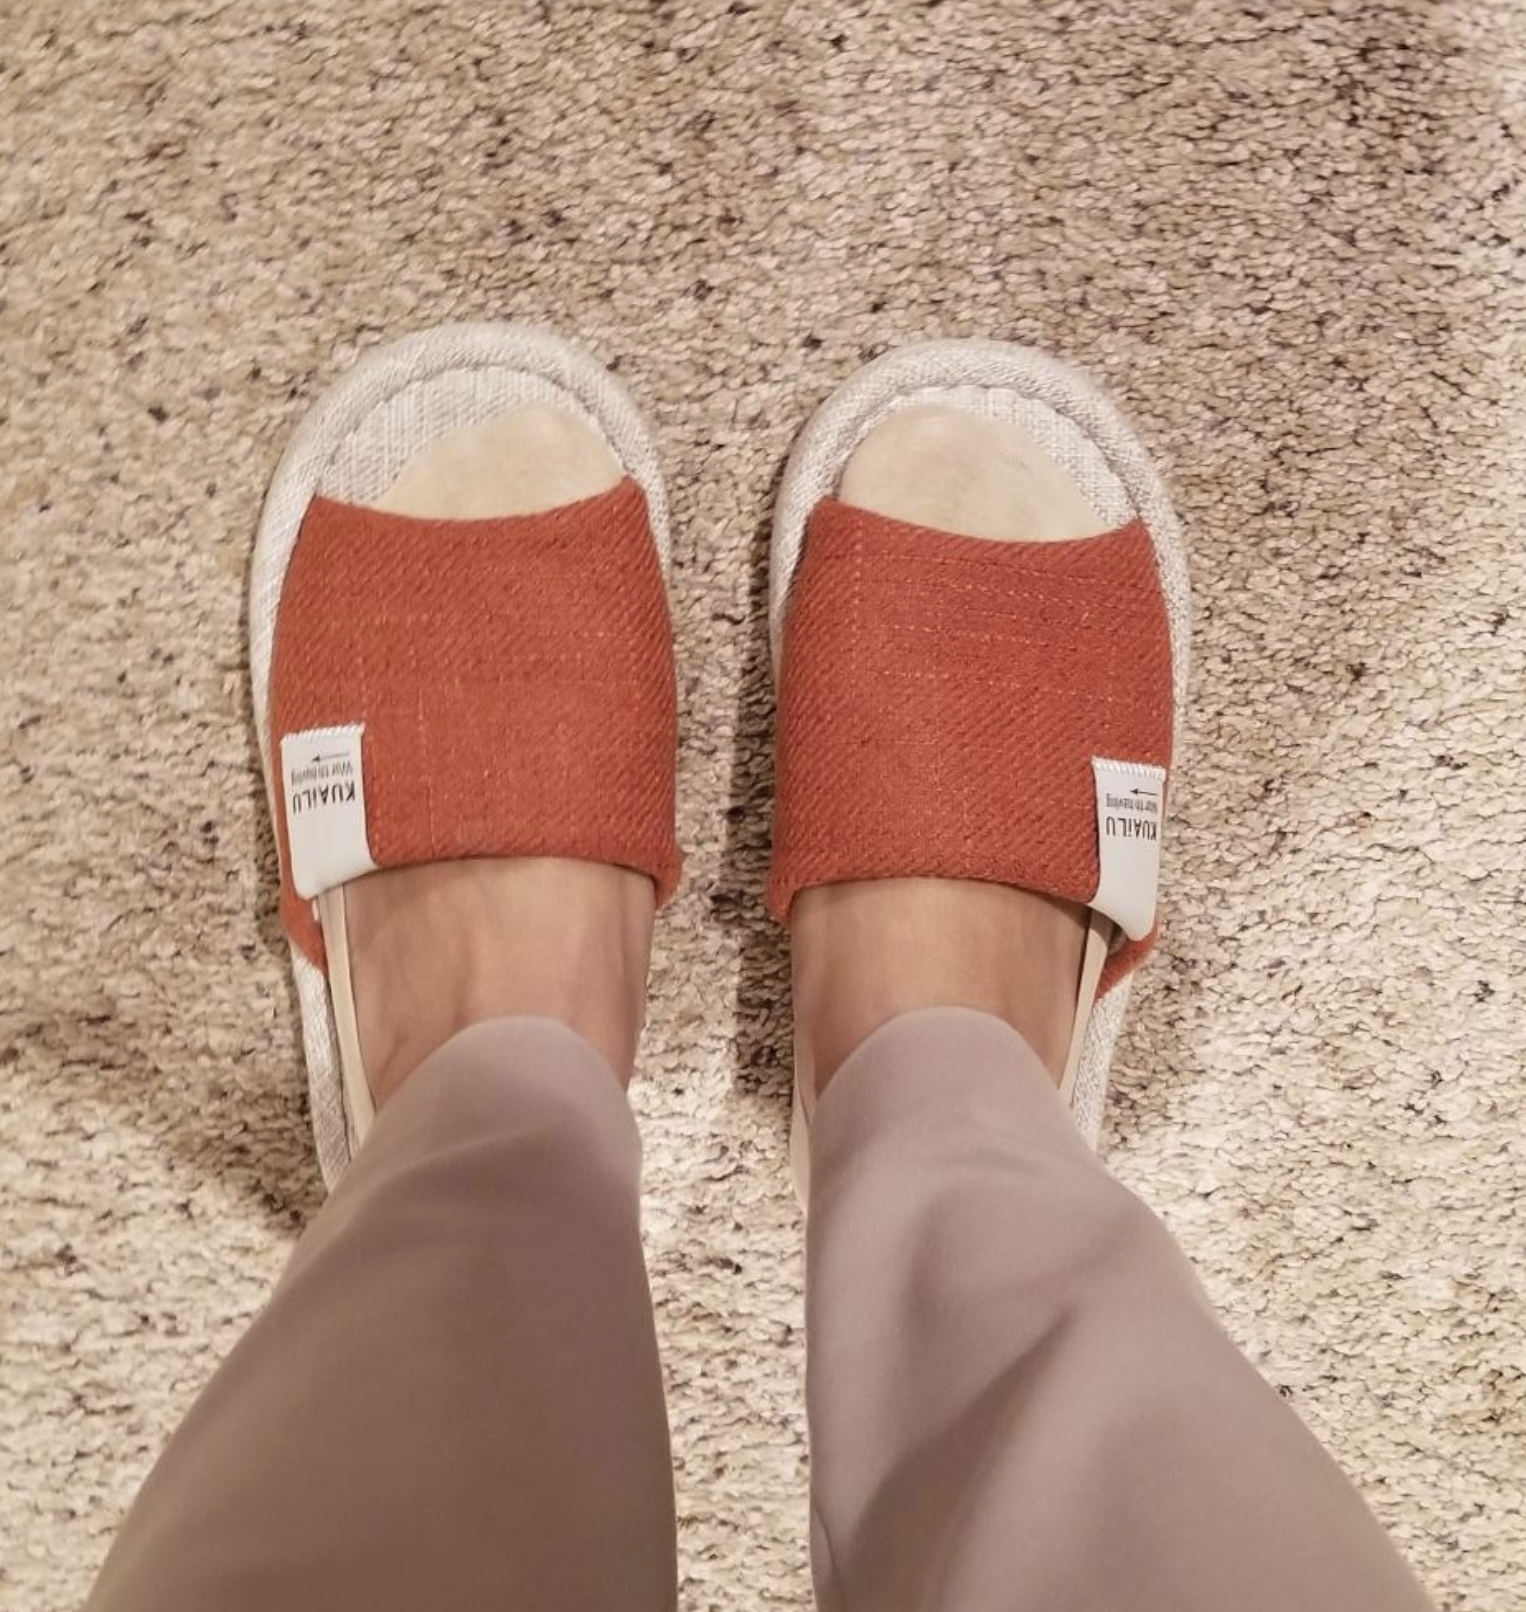 Reviewer's foot wearing the shoes with linen cloth on the top. They're dark orange.